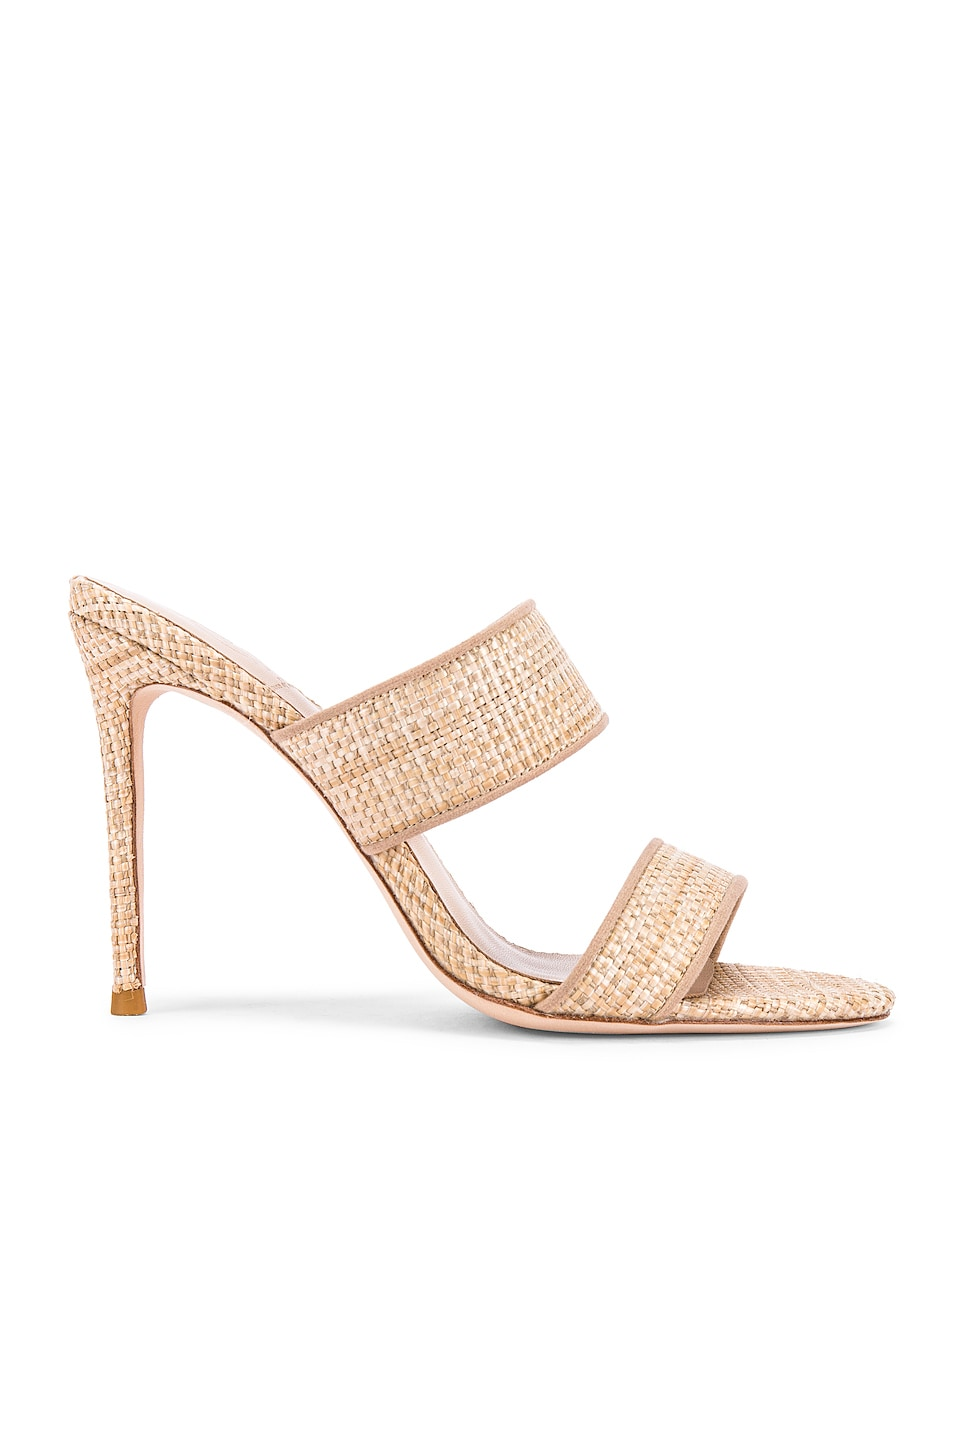 House of Harlow 1960 X REVOLVE Lane Heel in Natural